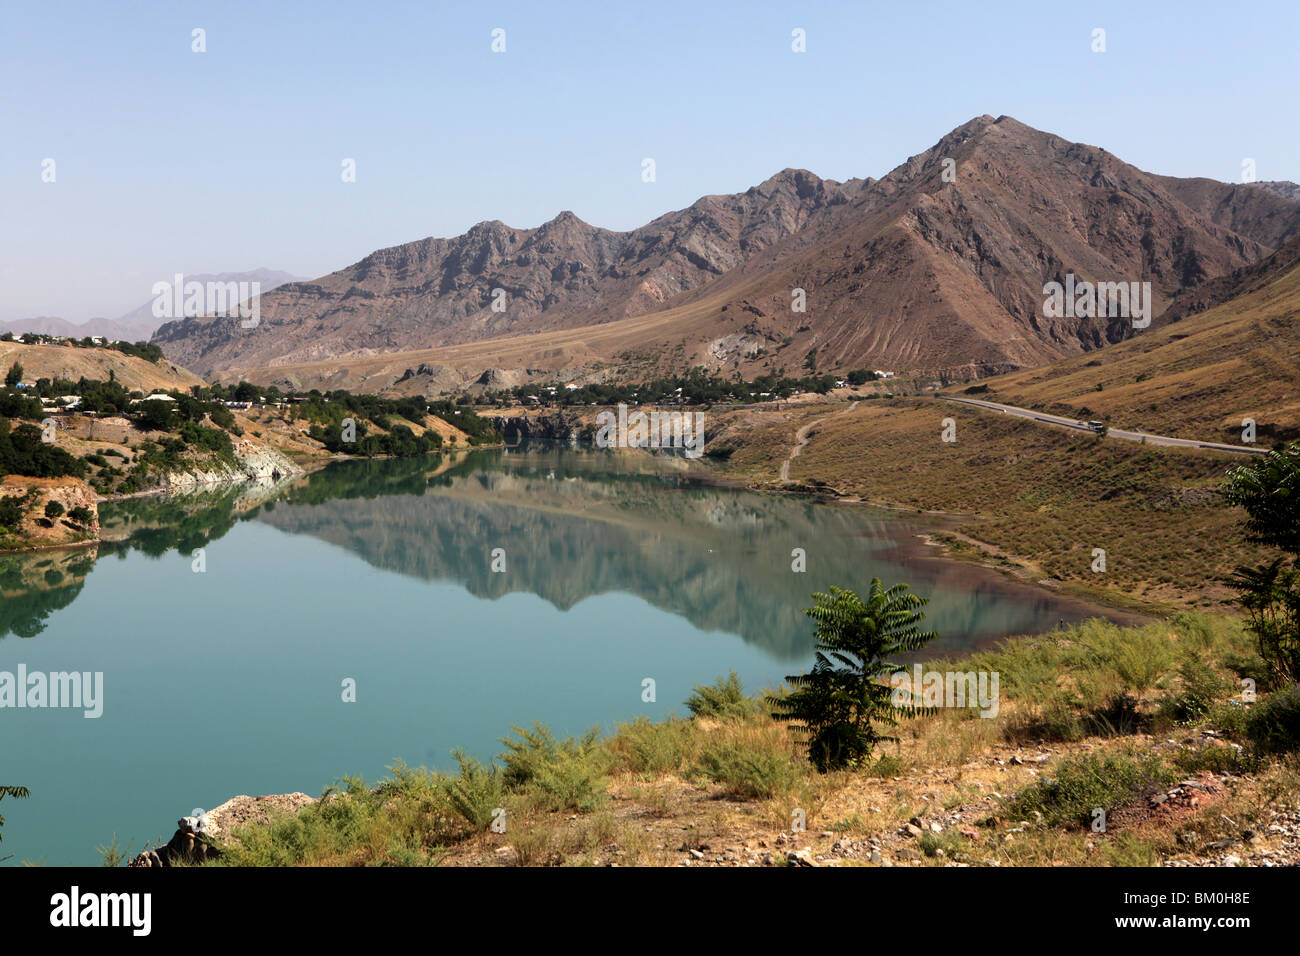 A high altitide lake in Kyrgystan, Central Asia. - Stock Image